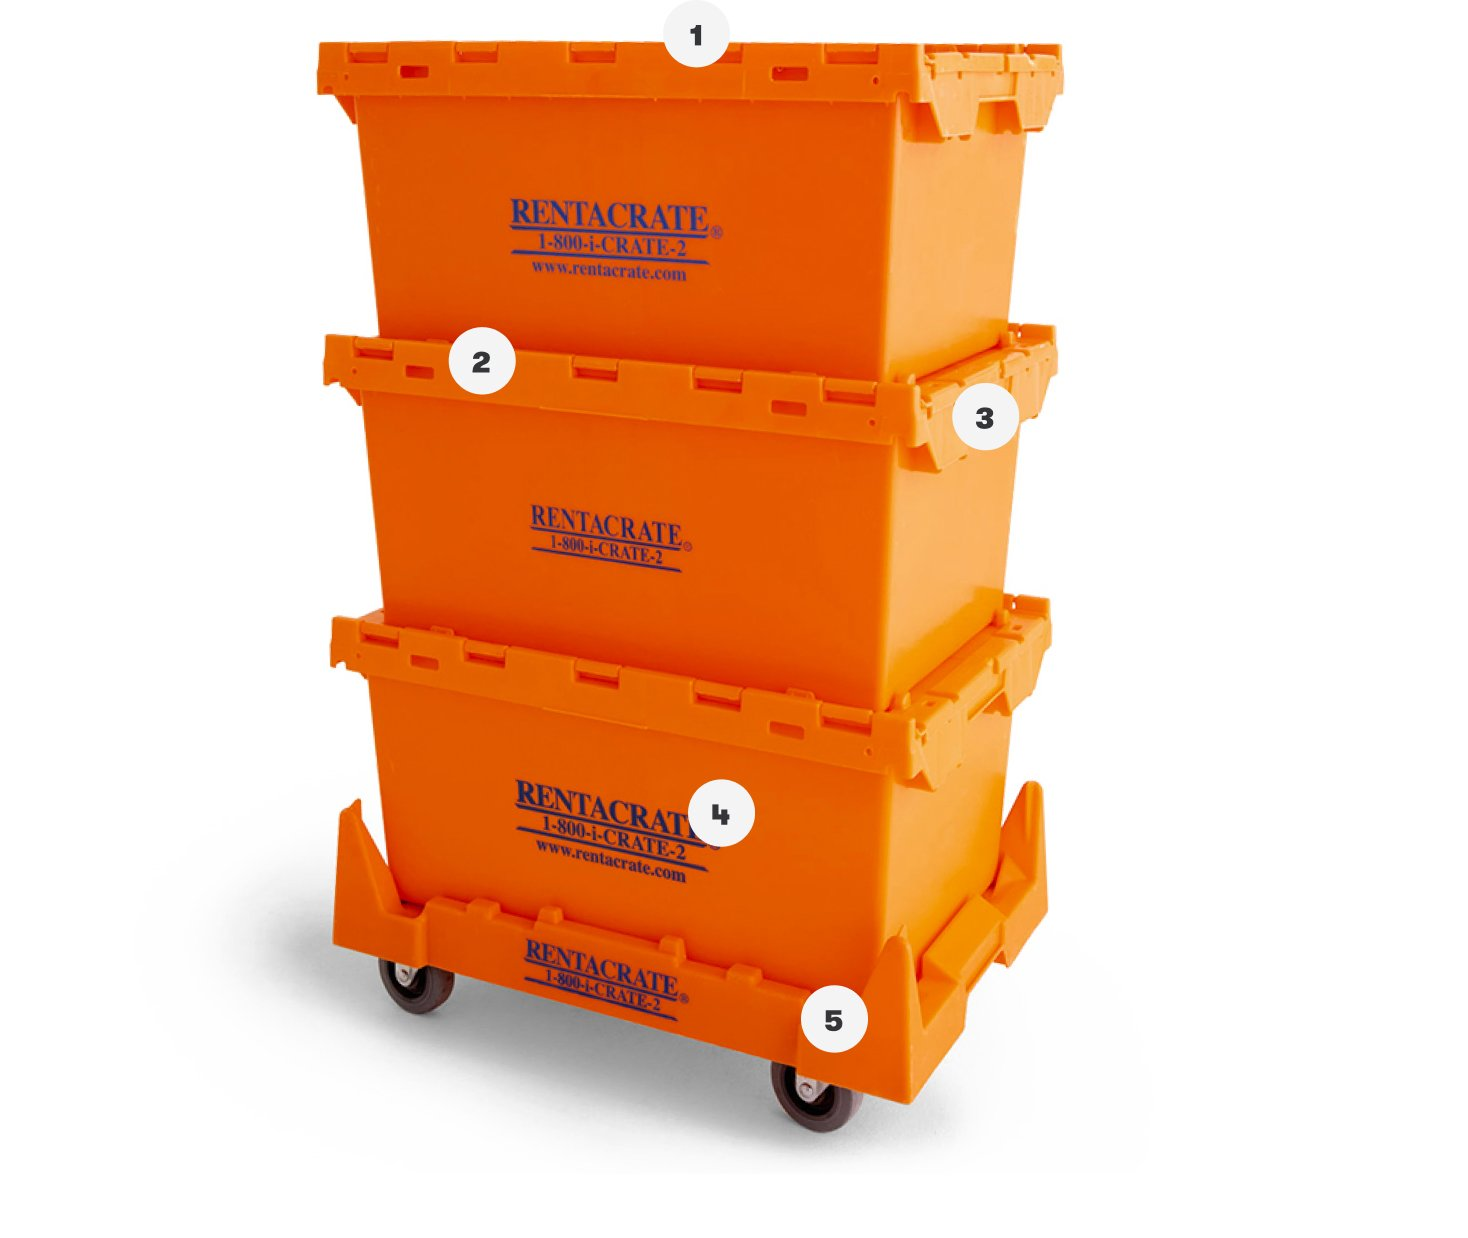 Commercial Relocation Plastic Moving Crates